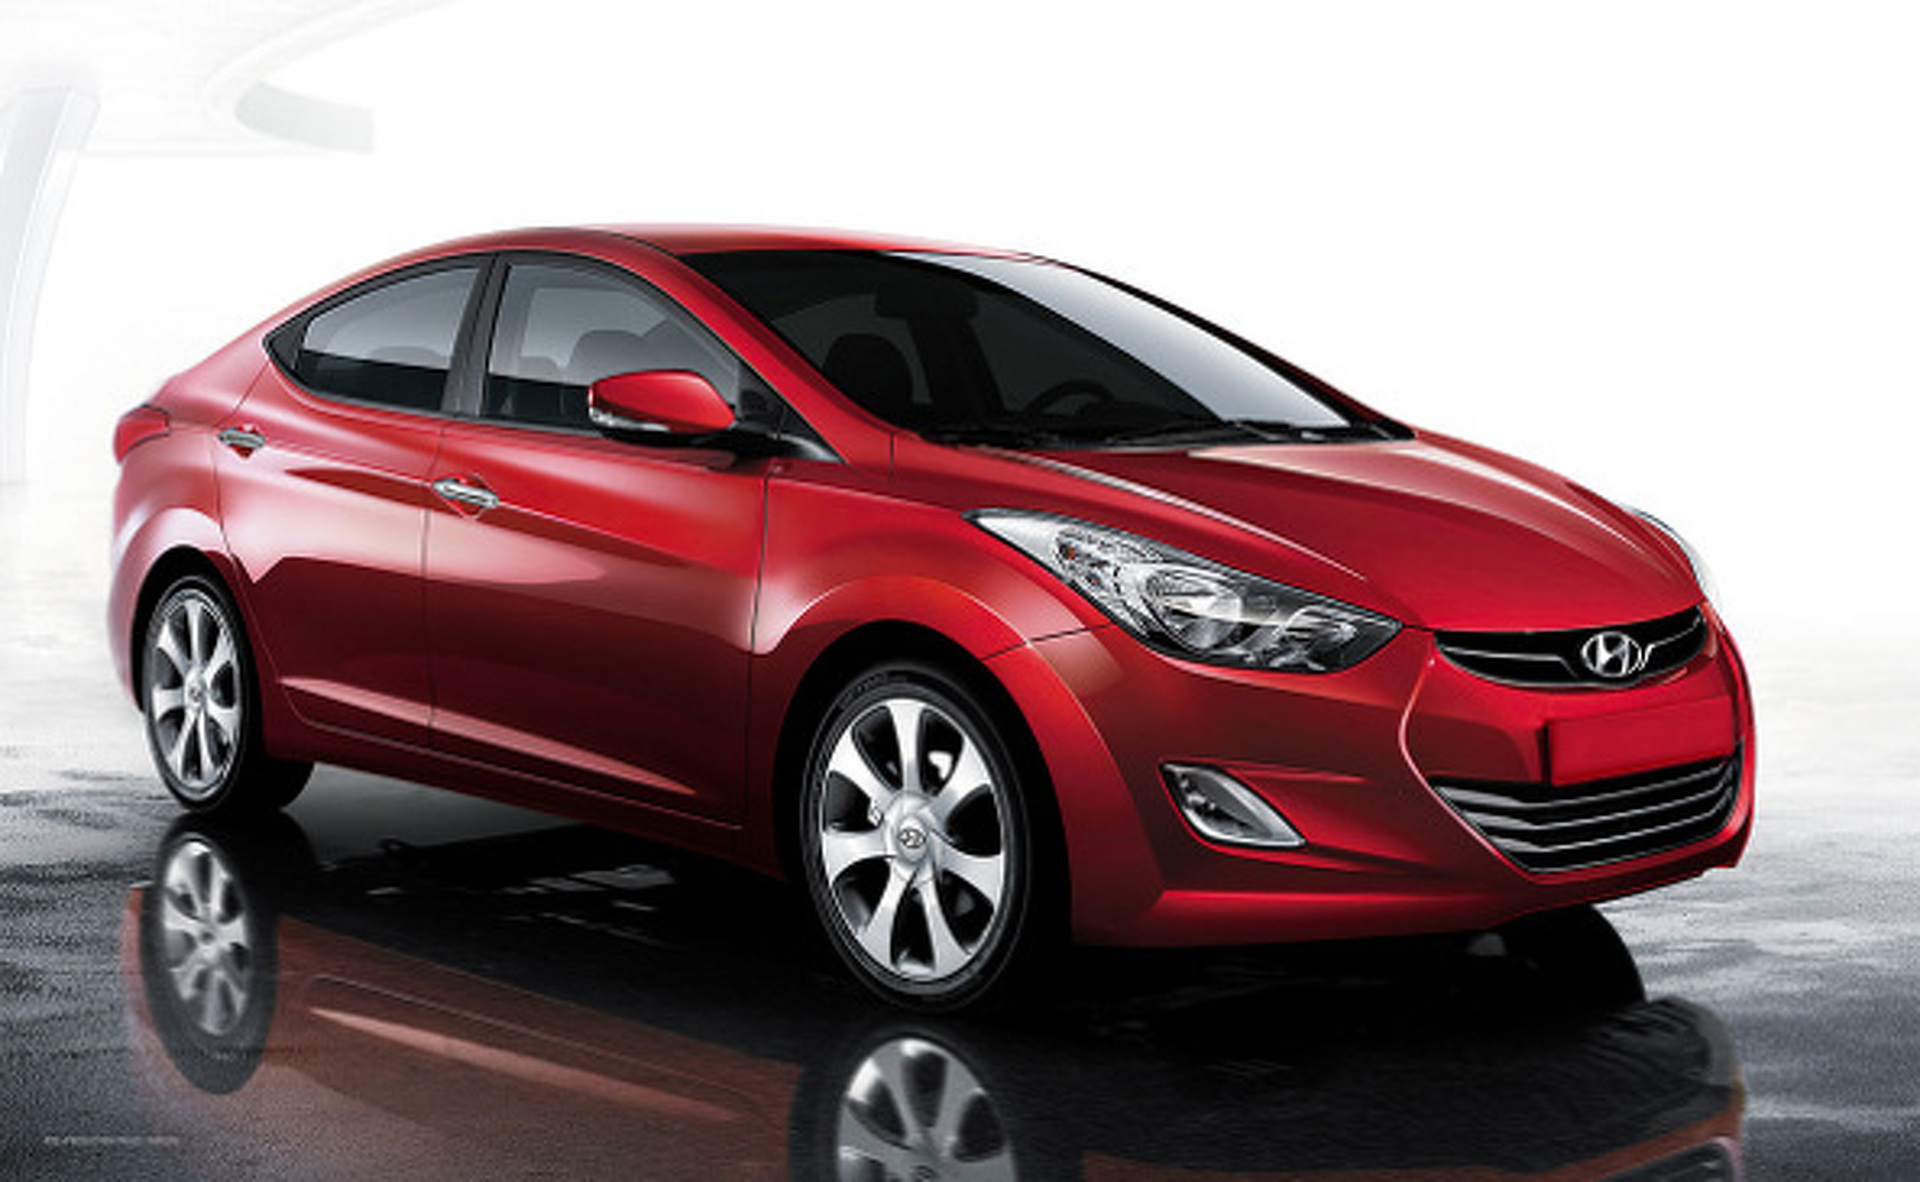 Hyundai and Kia MPG Scandal Most Overblown of 2012